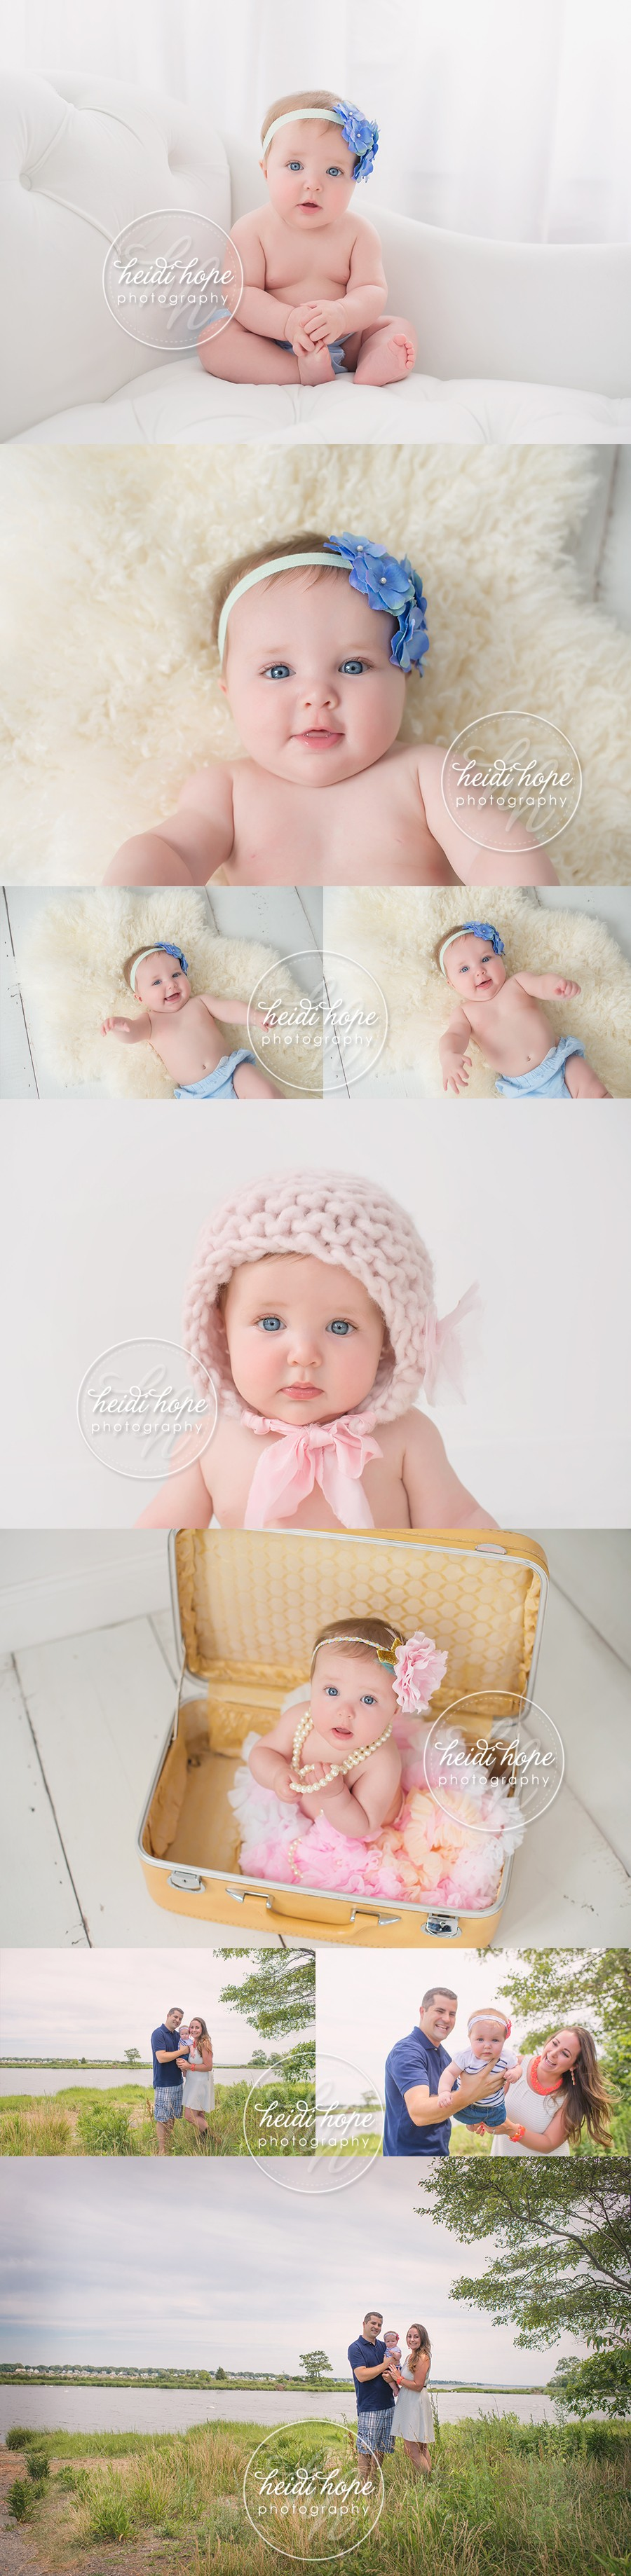 C's 6 month old baby session at the studio and outdoor ...